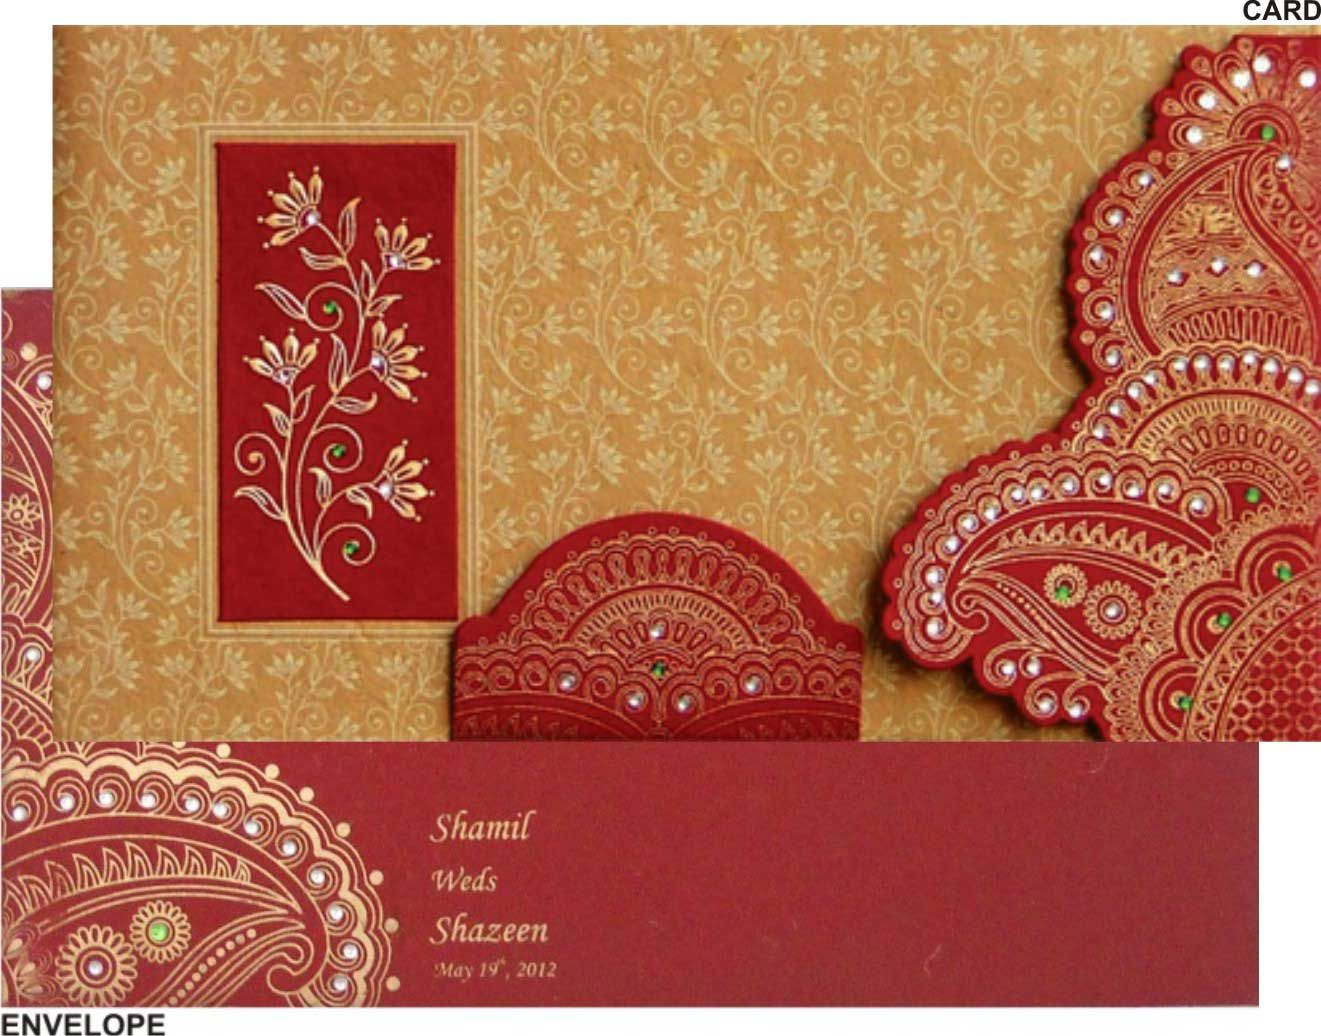 Wedding Cards Wallpaper - http://www.redwatchonline.org/wedding ...